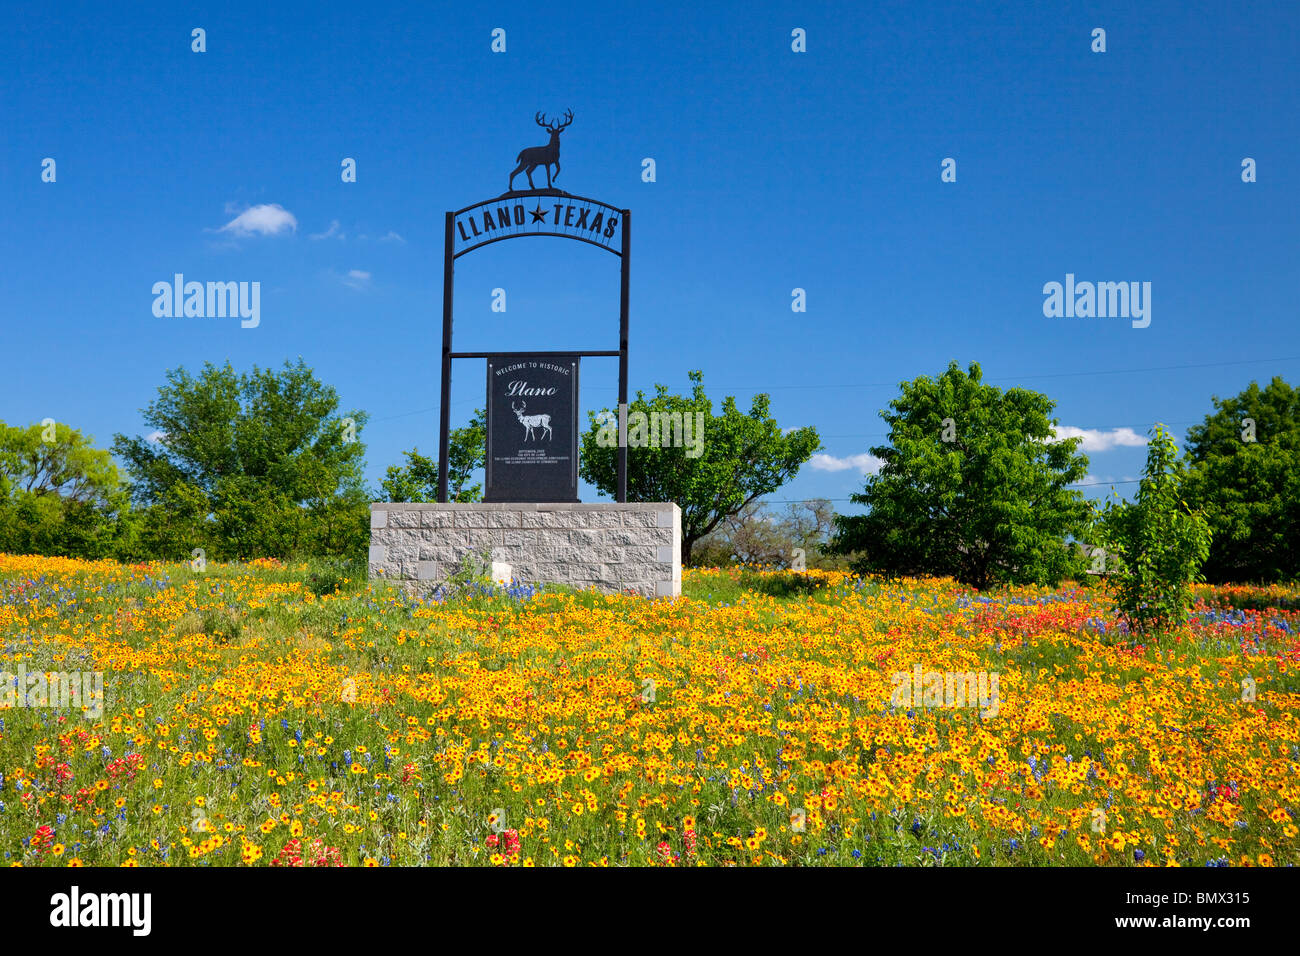 A modern sign and wildflowers for the city of Llano, Texas, USA. - Stock Image